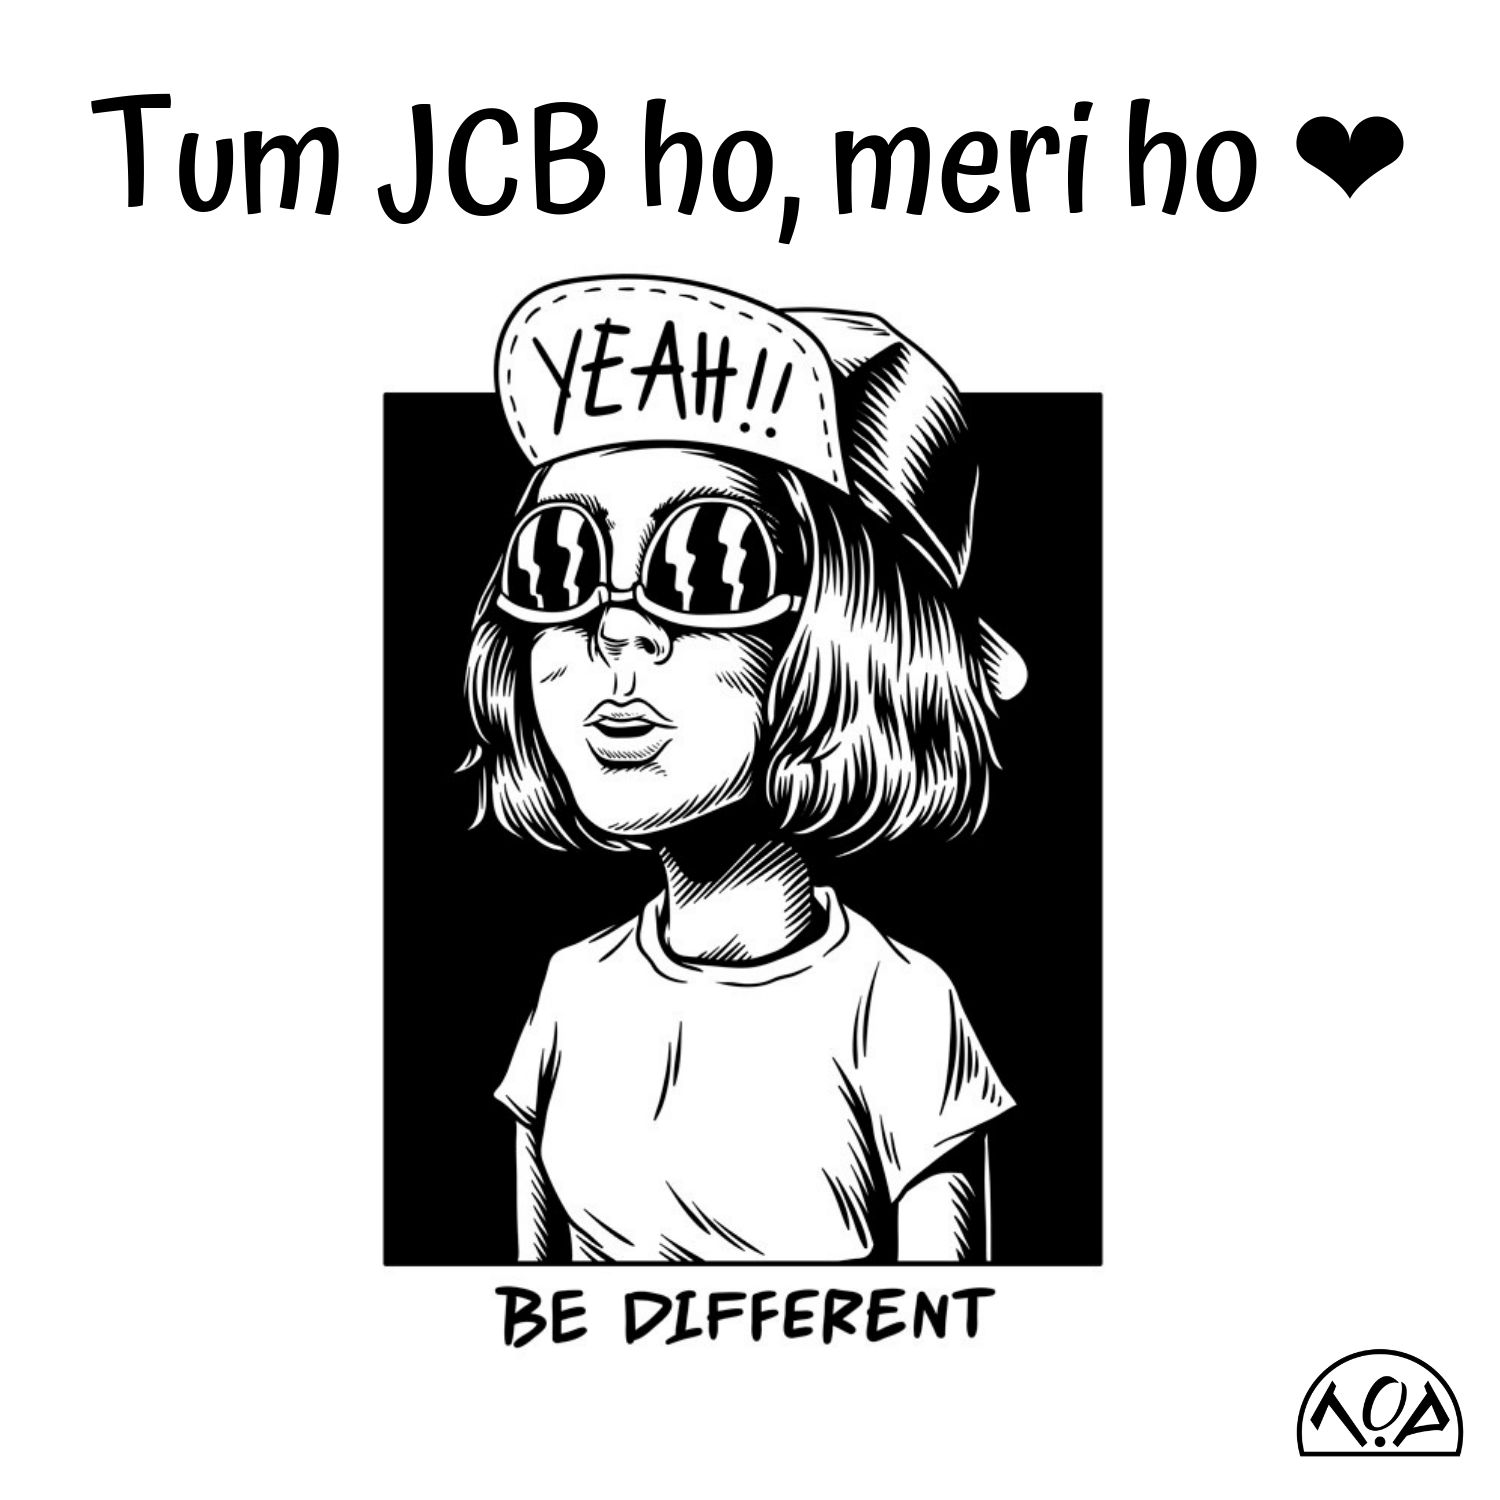 Why JCB ki Khudai meme is trending now?